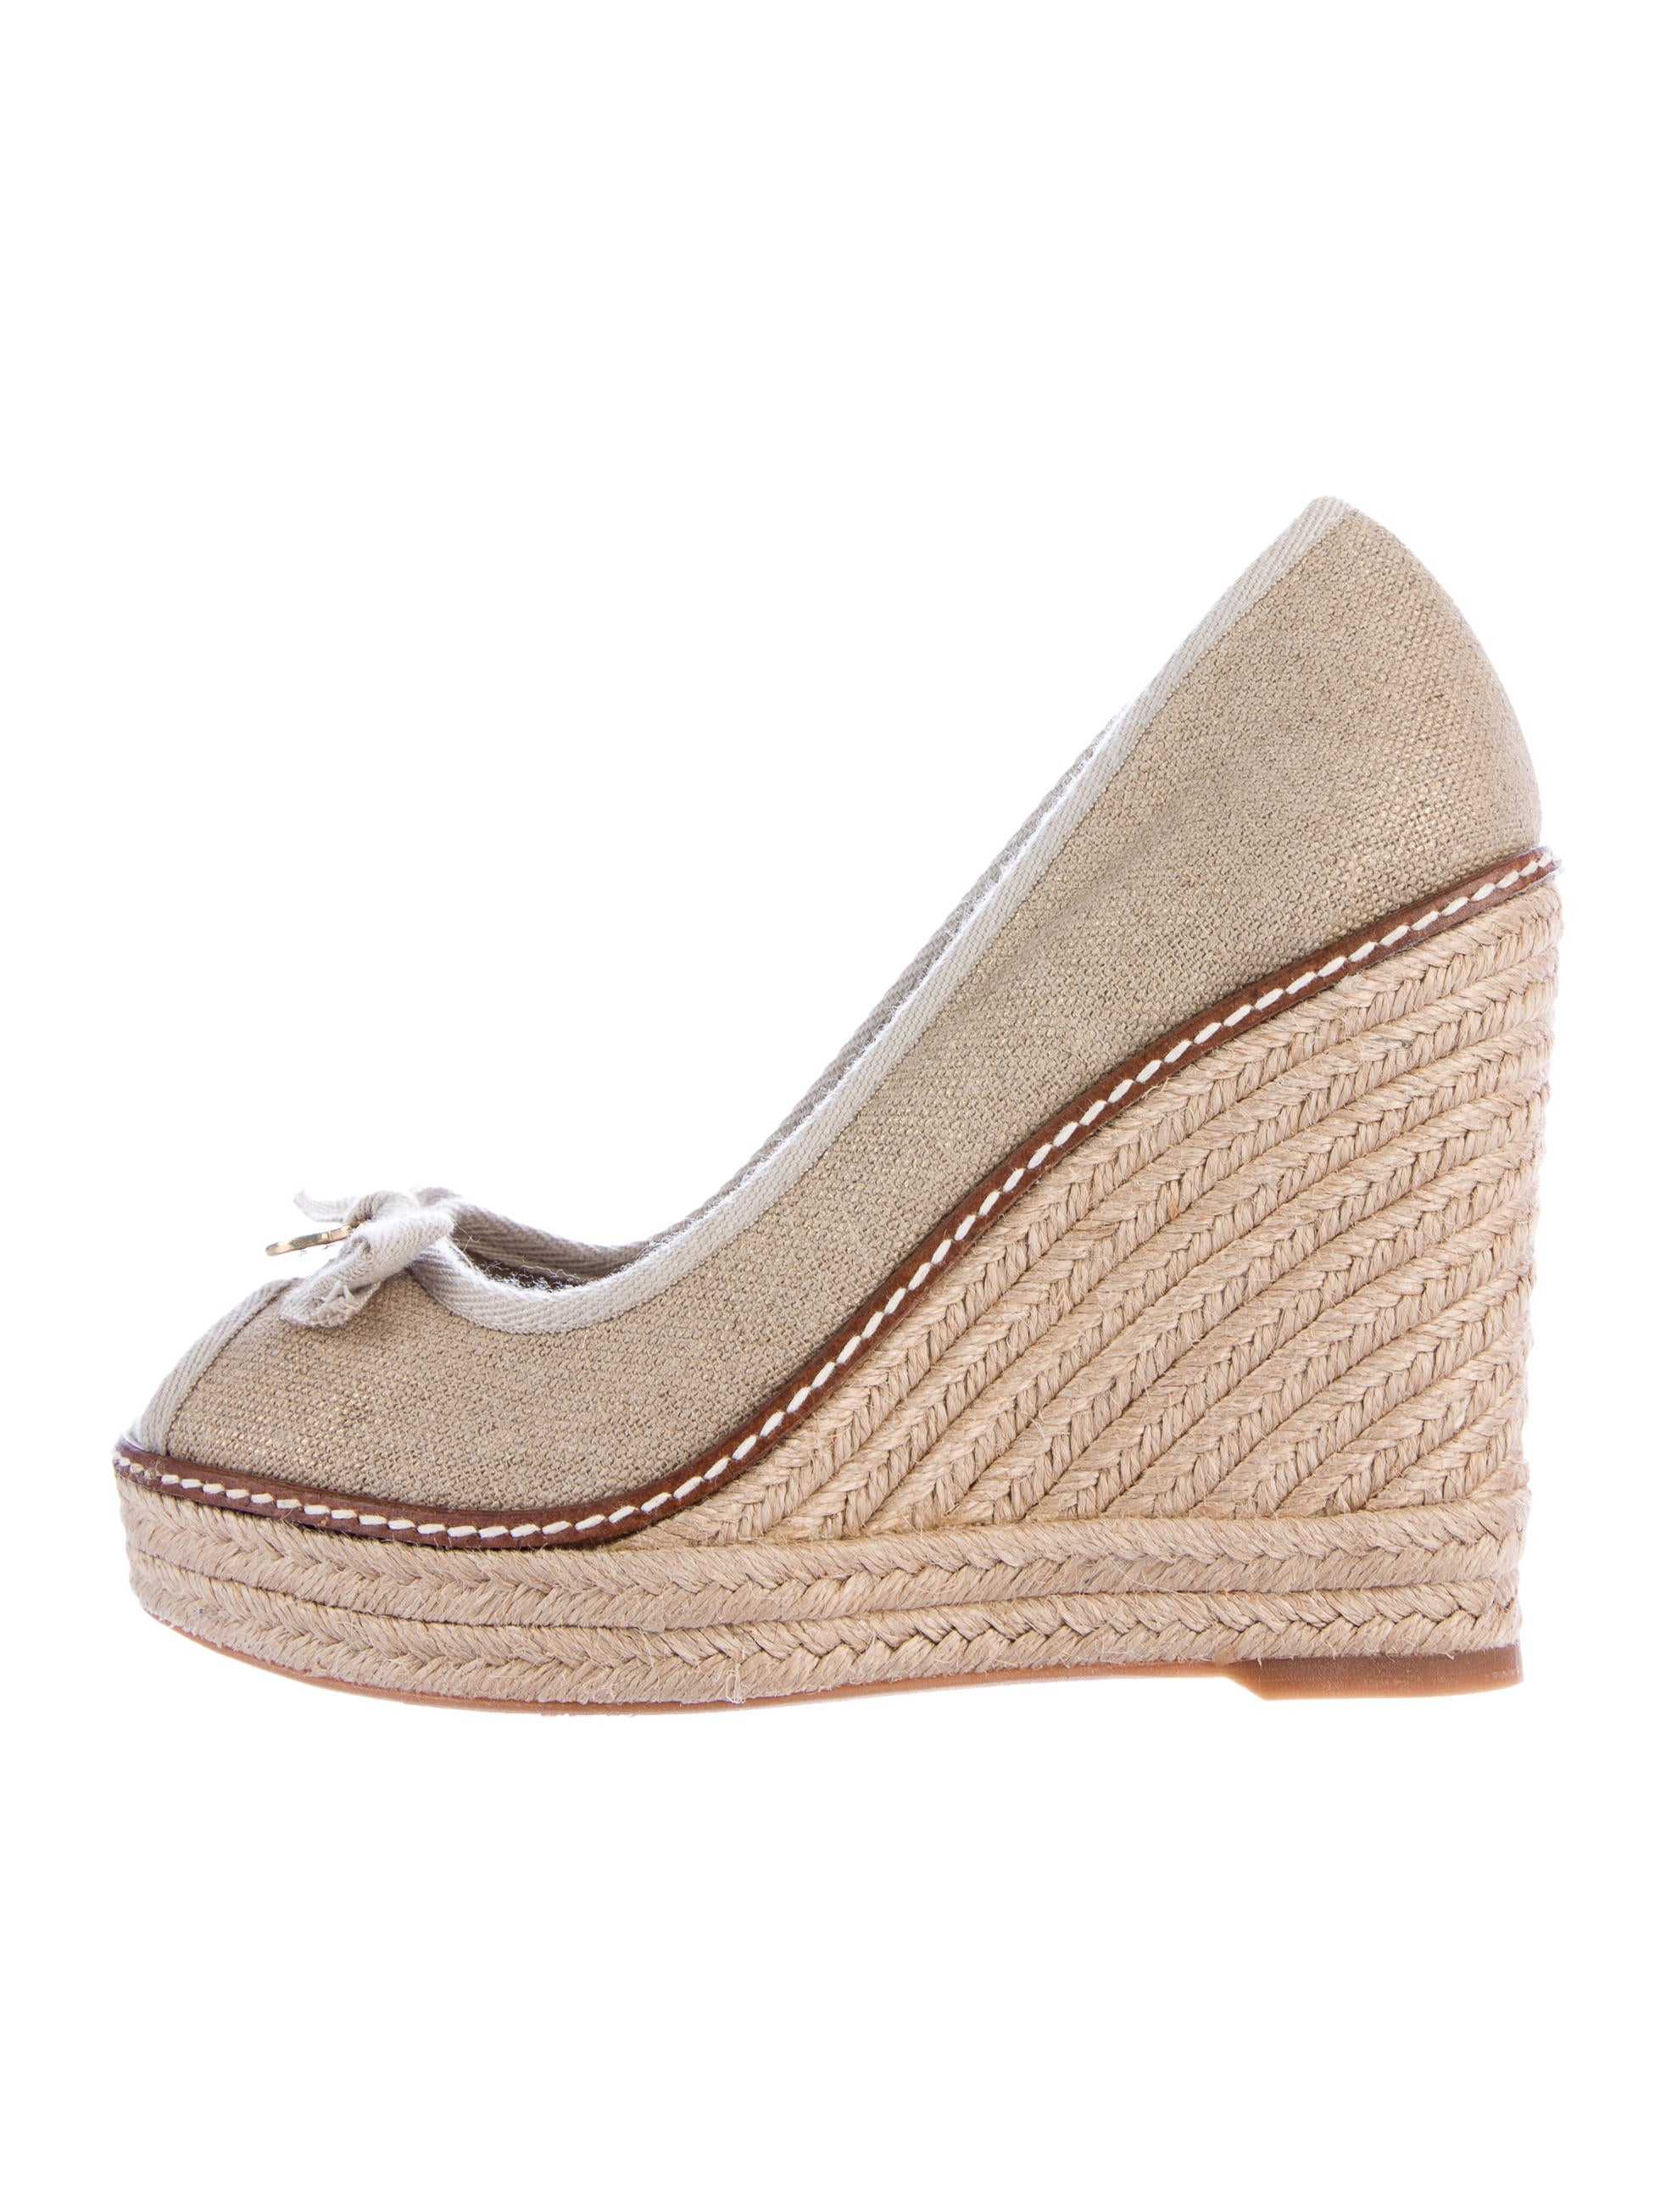 burch canvas espadrille wedges shoes wto89278